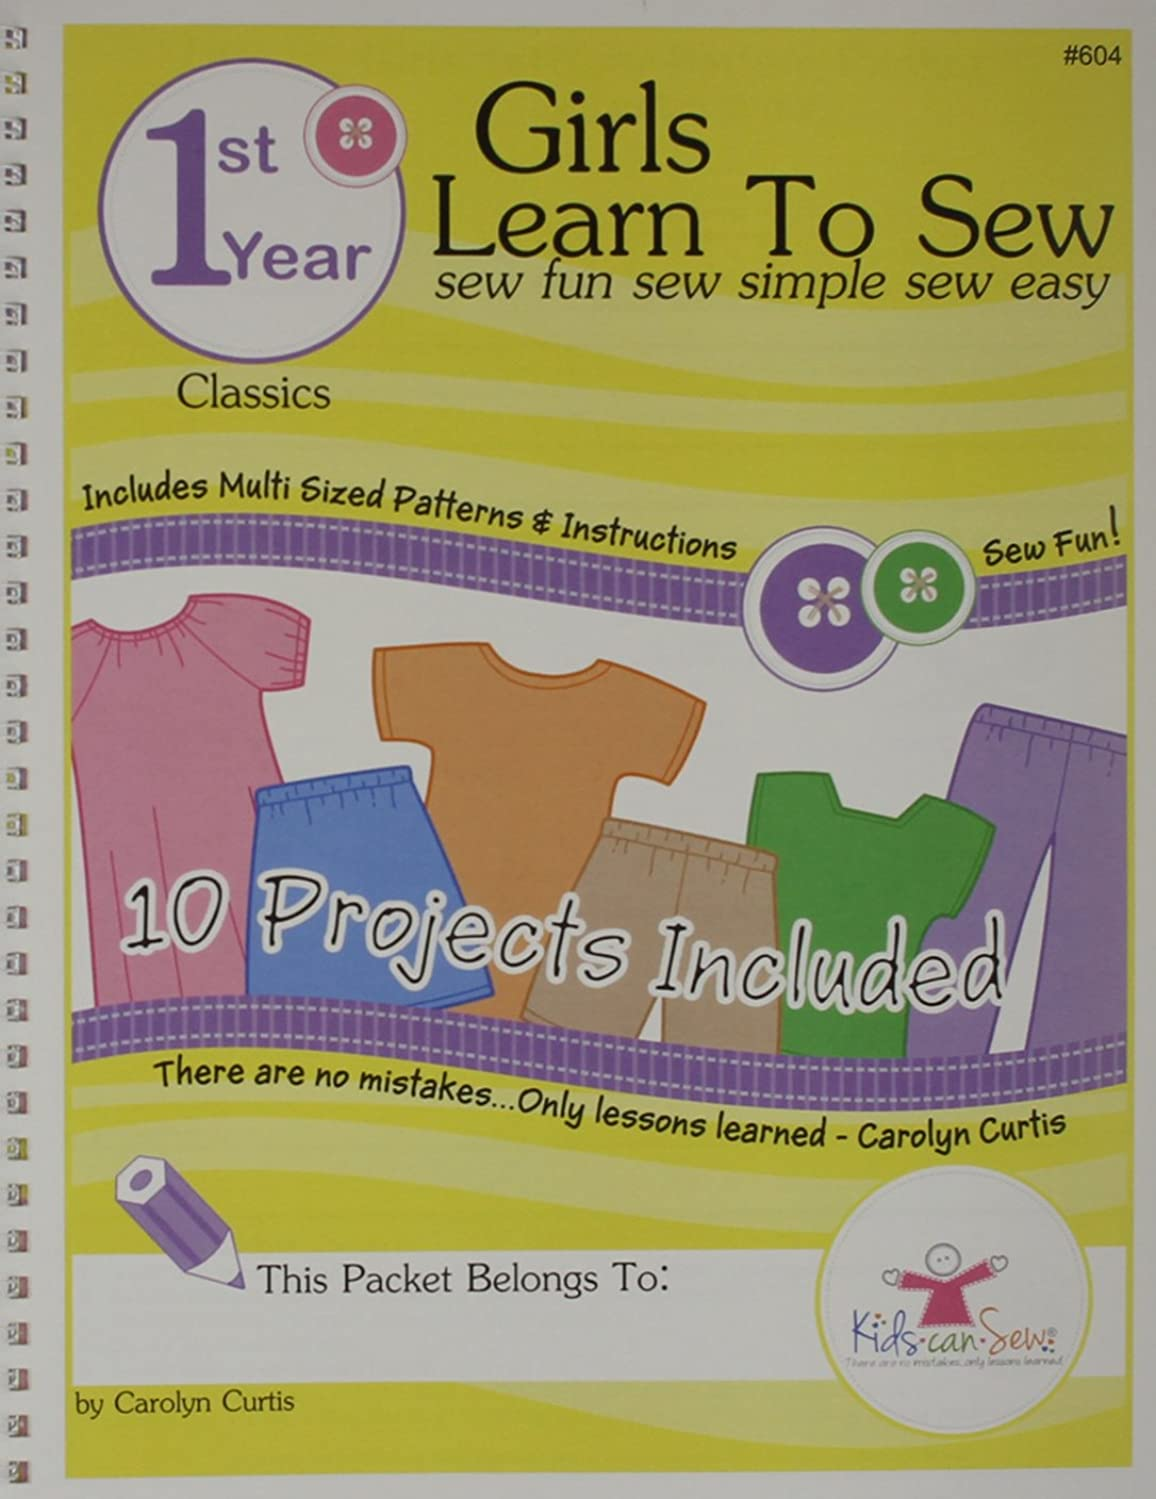 Kids Can Sew? Girls Learn to Sew 1st Year Sewing Pattern Book Packet - Classic Clothing Styles